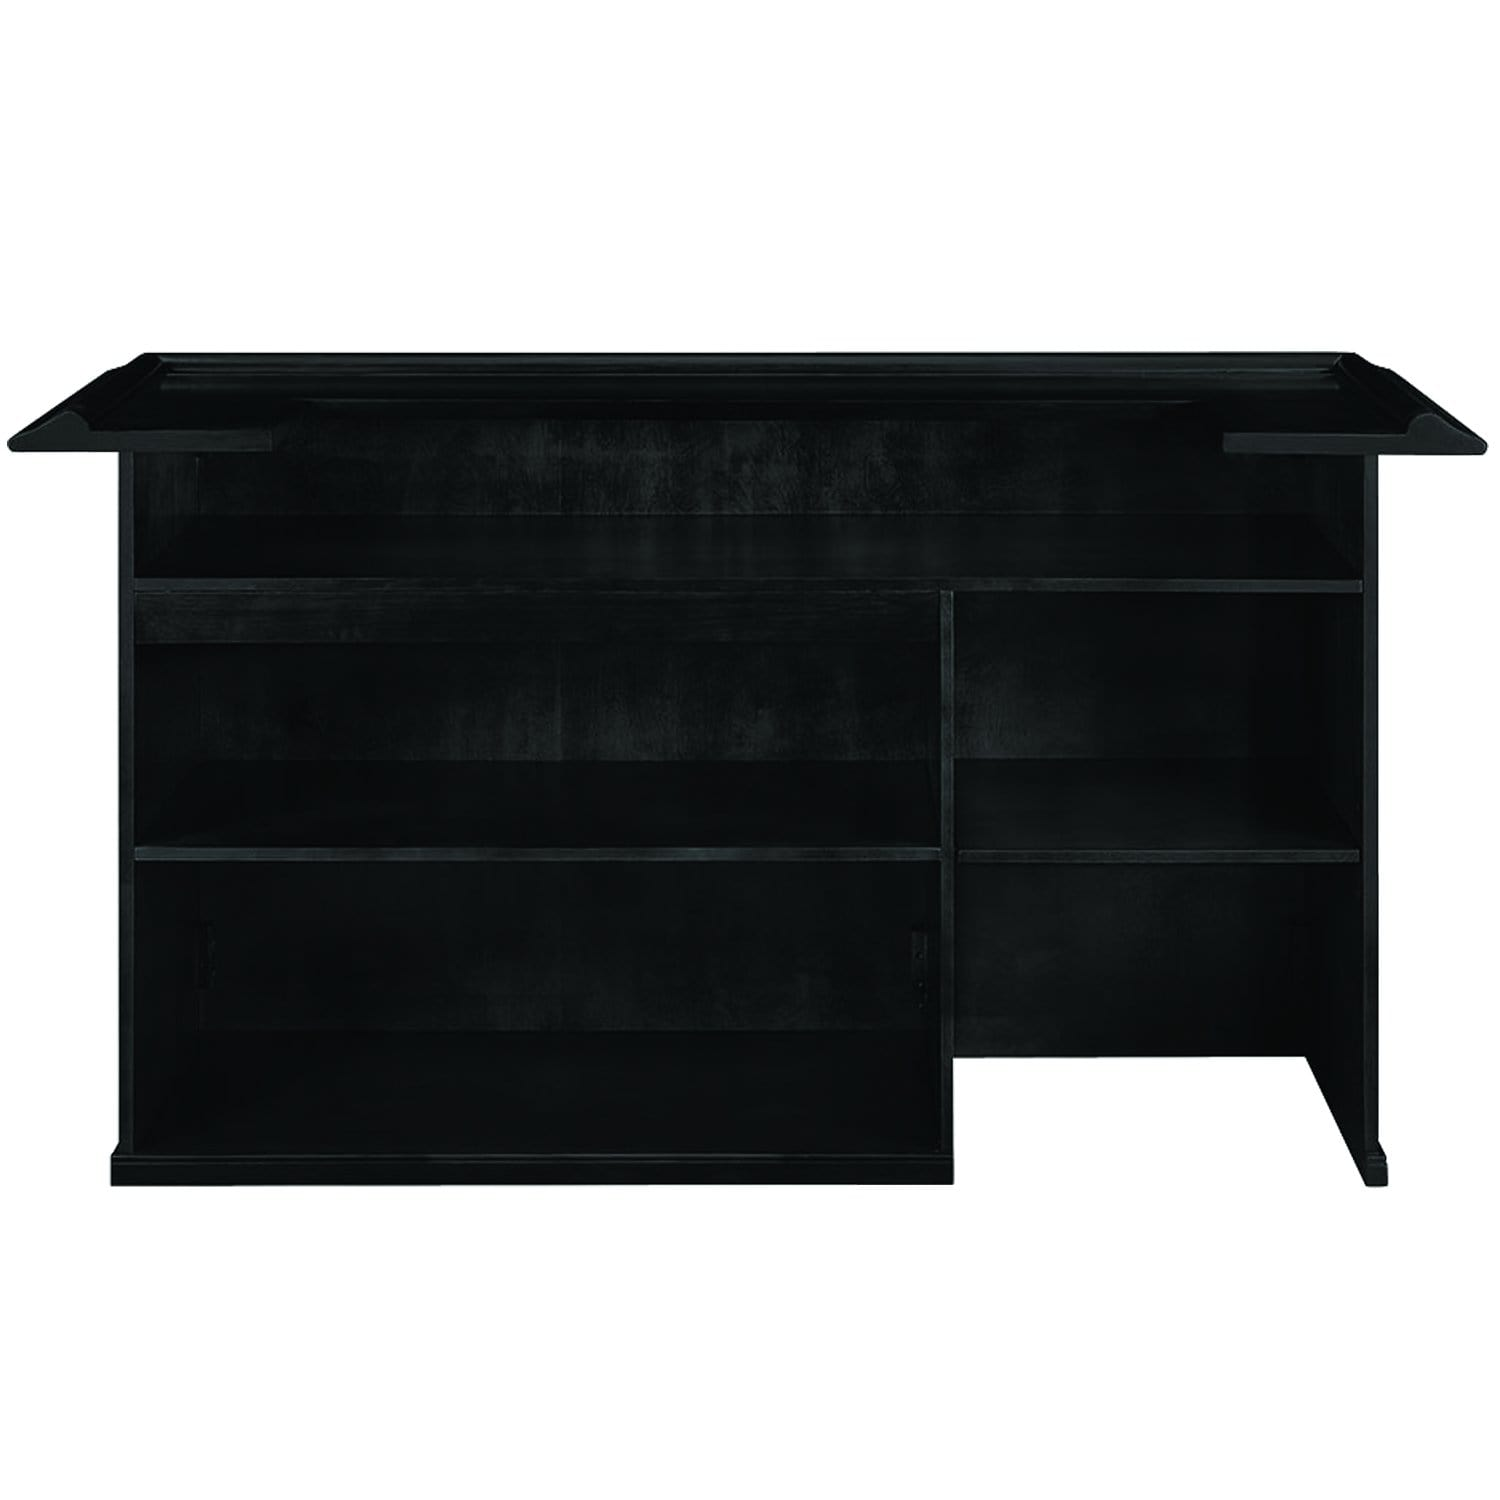 Ram Game Room 84 Rustic Wooden Home Bar With 4 Shelves Room For